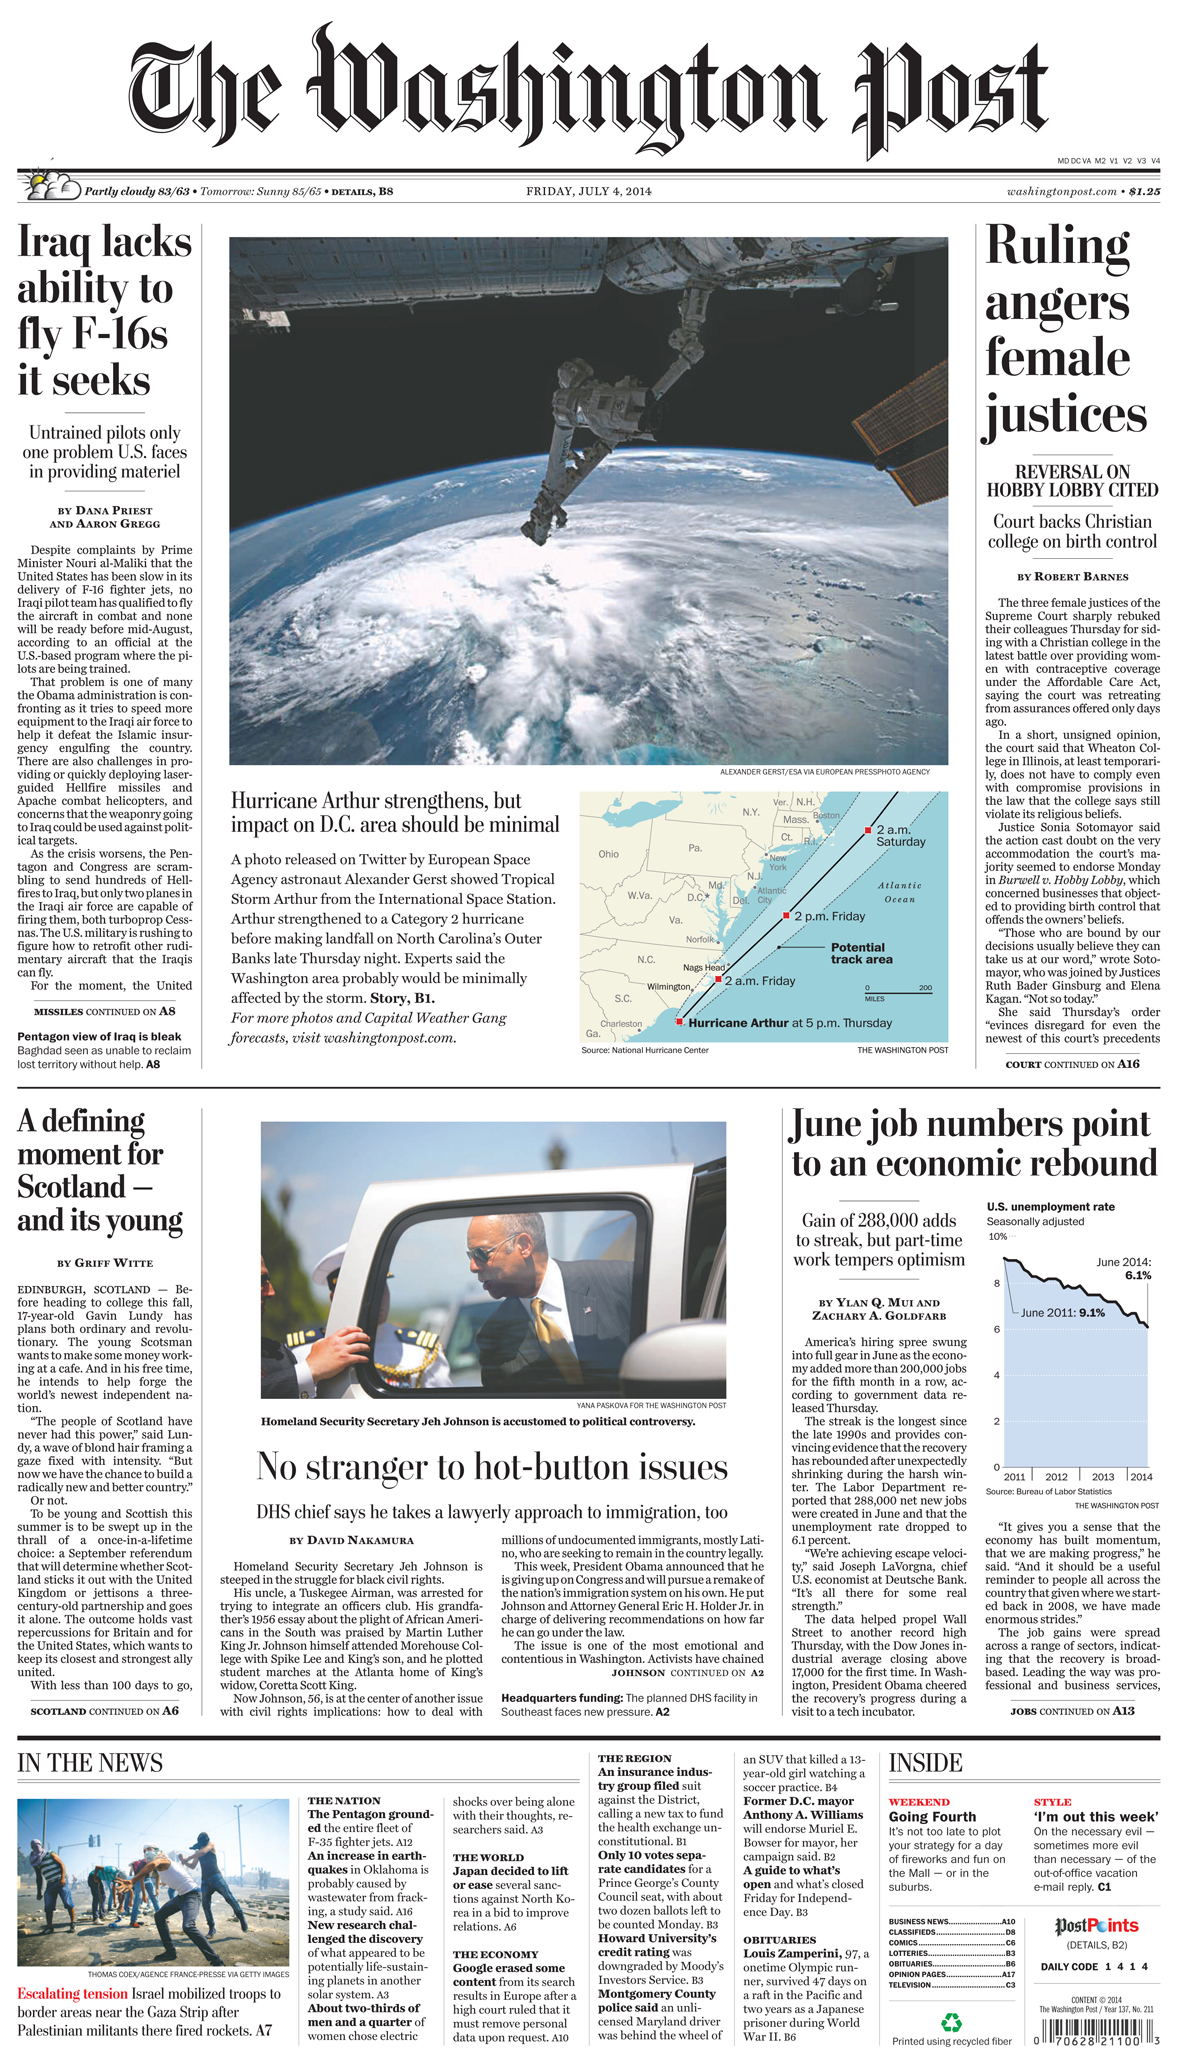 The Washington Post front page(second photo from the top)